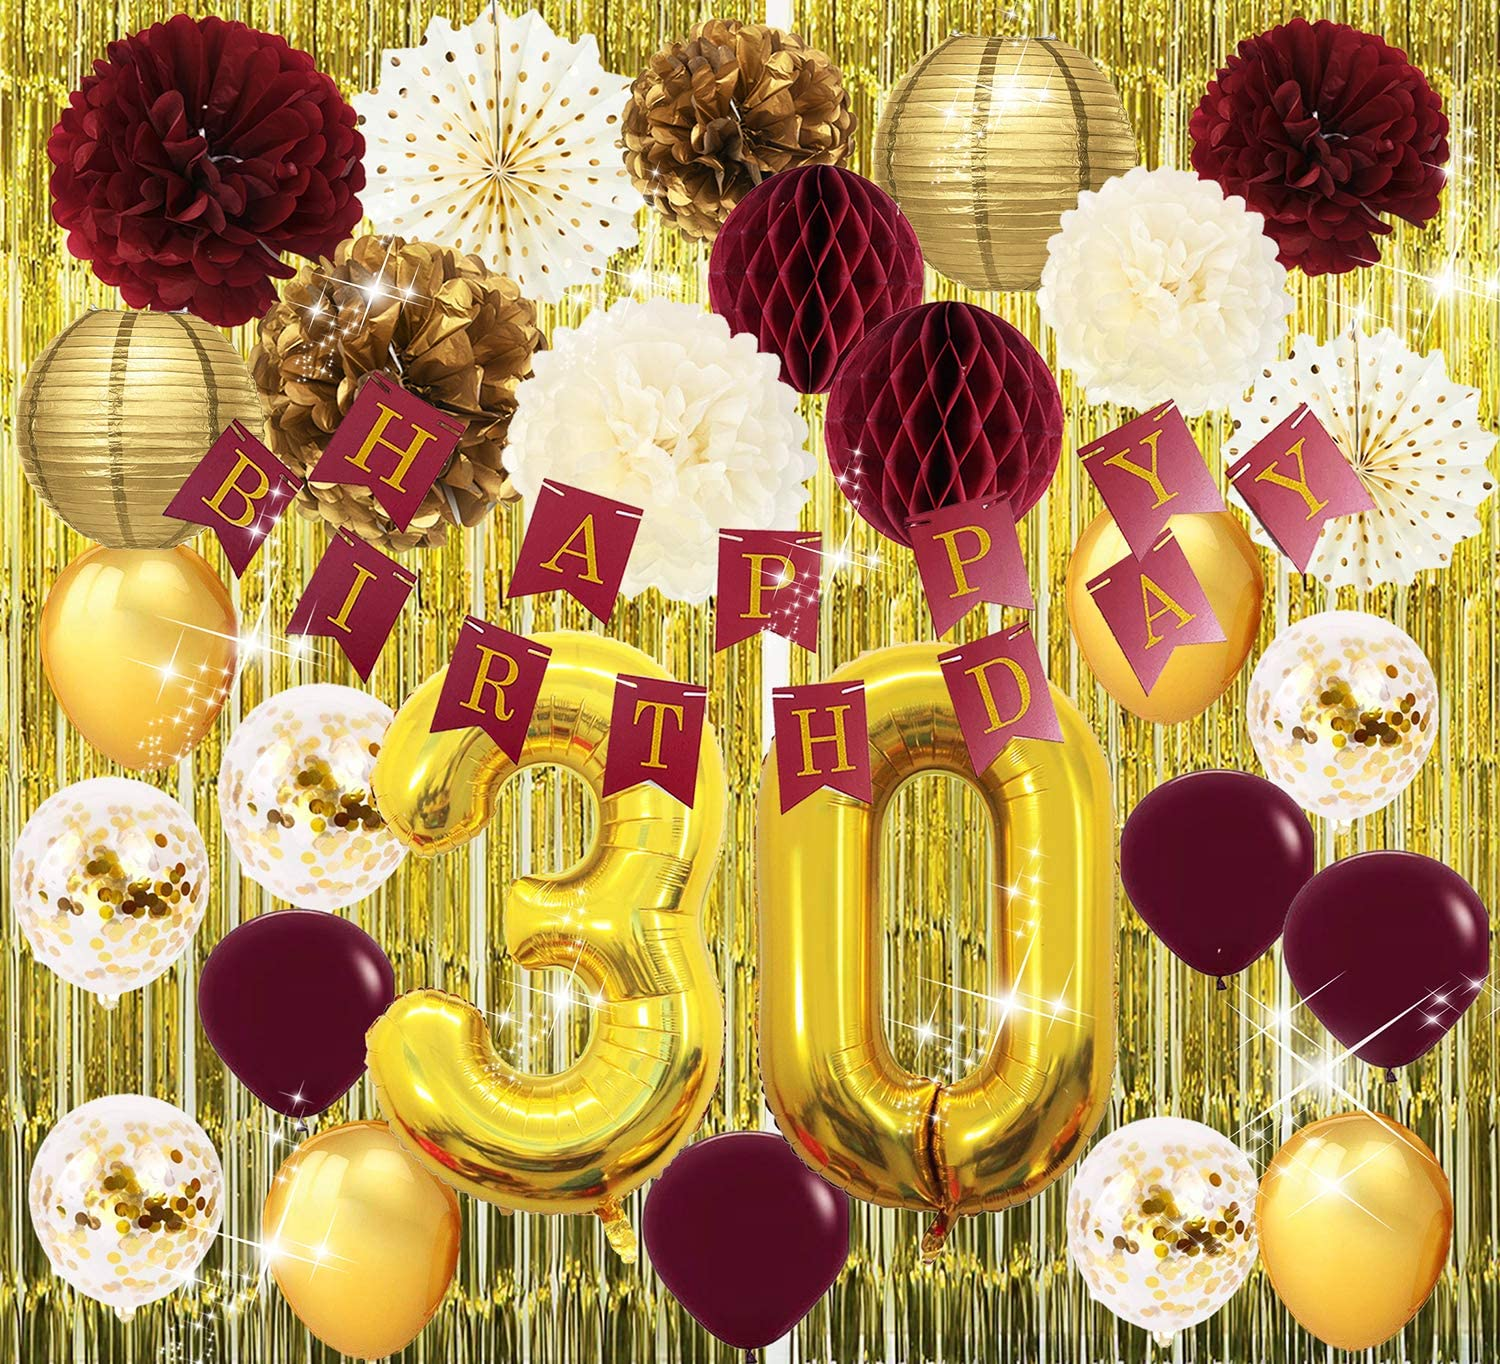 30th Birthday Party Decorations for Women Burgundy Gold Happy Birthday Banner Gold Foil Curtain Polka Dot Fans for Burgundy Fall Birthday Party Supplies/Women 30th Birthday Decorations